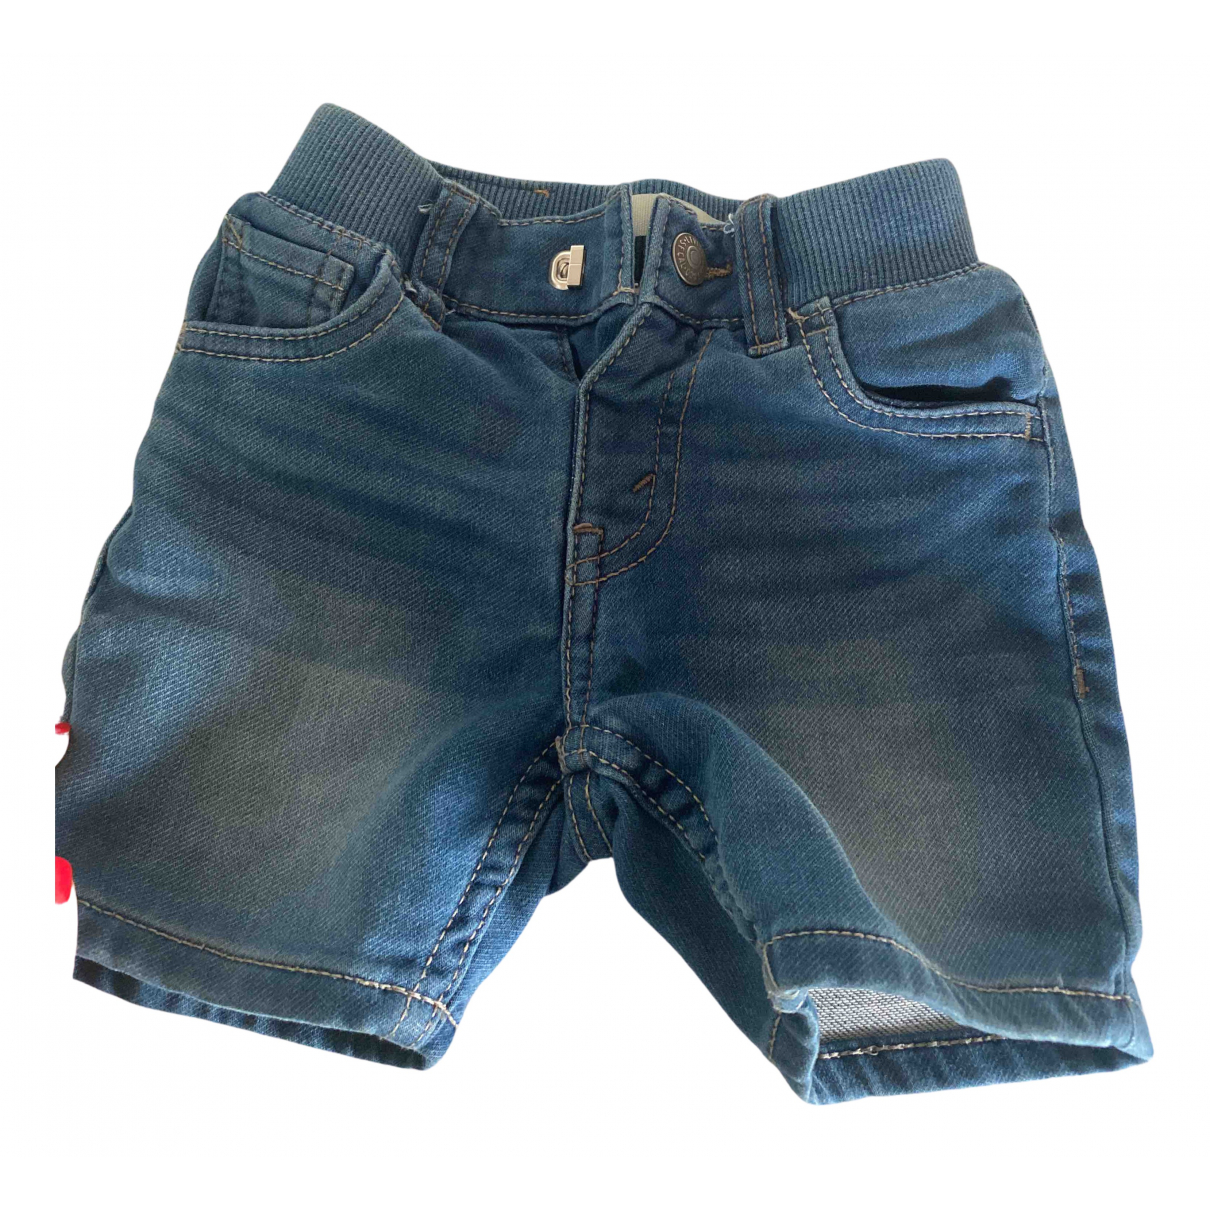 Levi's N Blue Denim - Jeans Shorts for Kids 2 years - up to 86cm FR